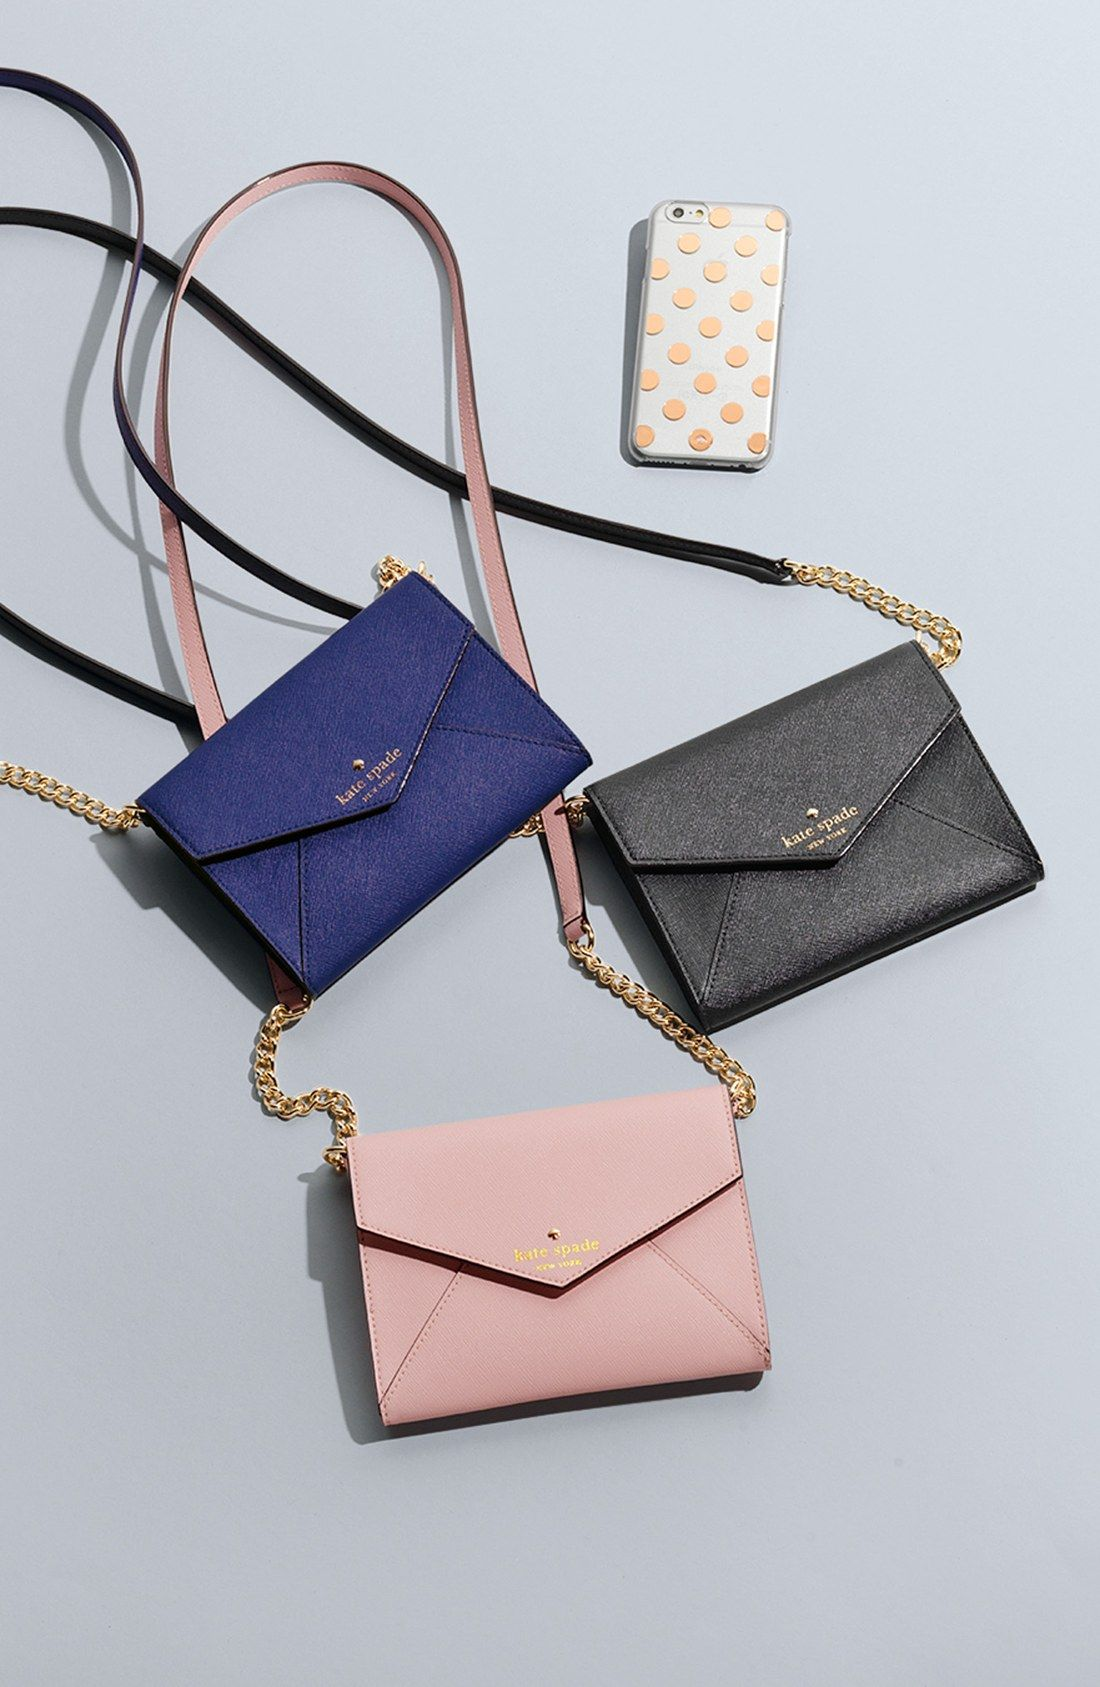 42bdd40387b5 These Kate Spade crossbody bags are très chic. | Anniversary Sale ...